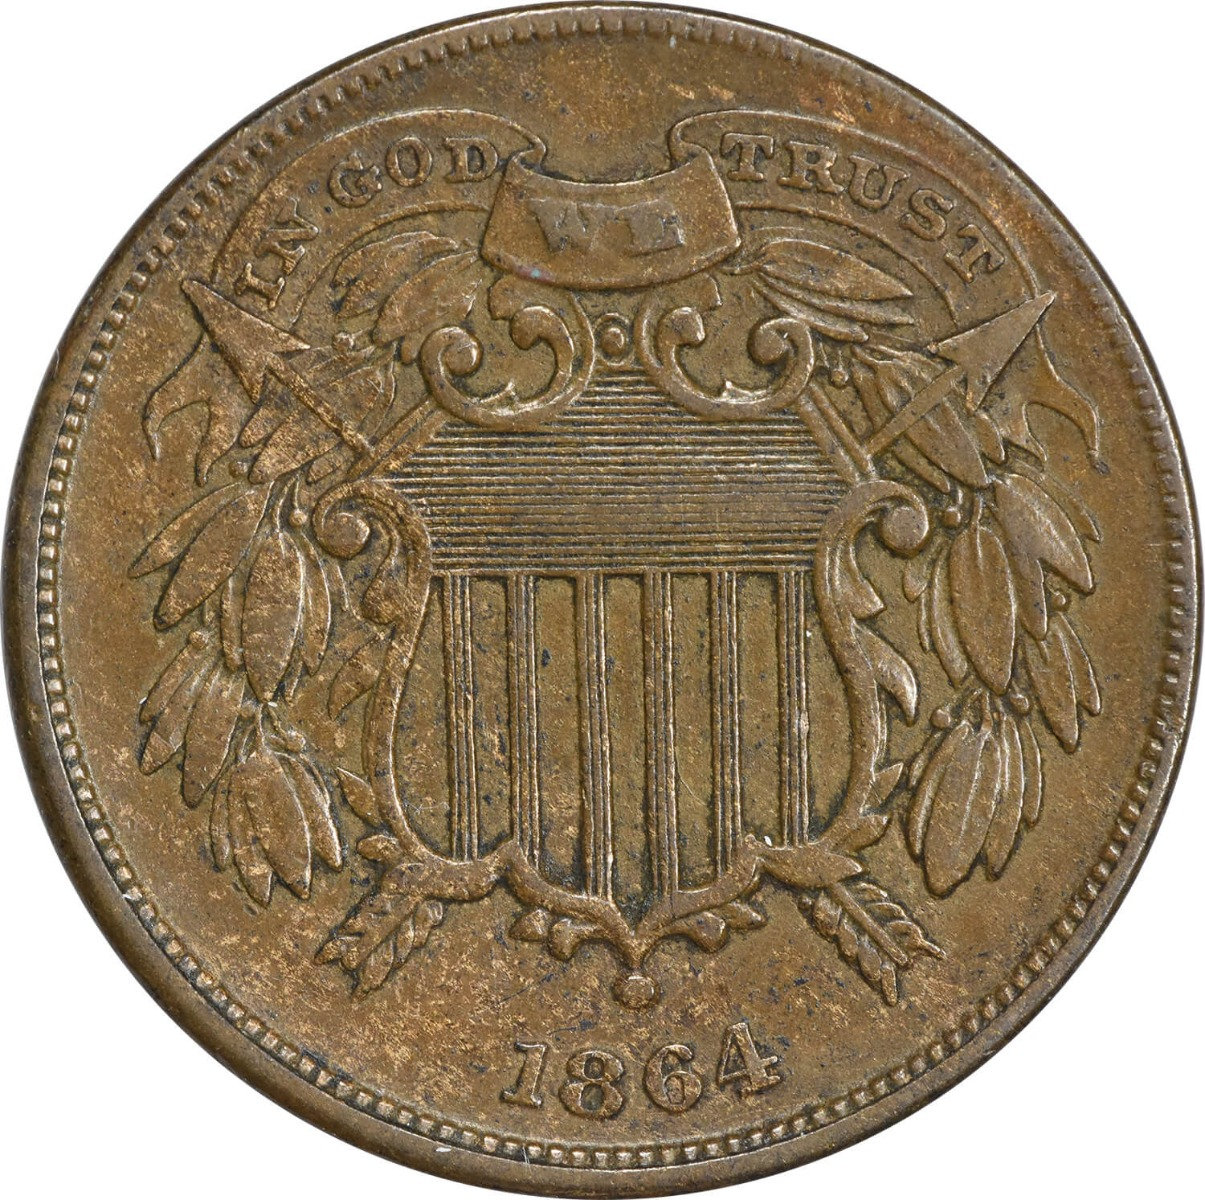 1864 Two Cent Piece, Small Motto, EF, Uncertified